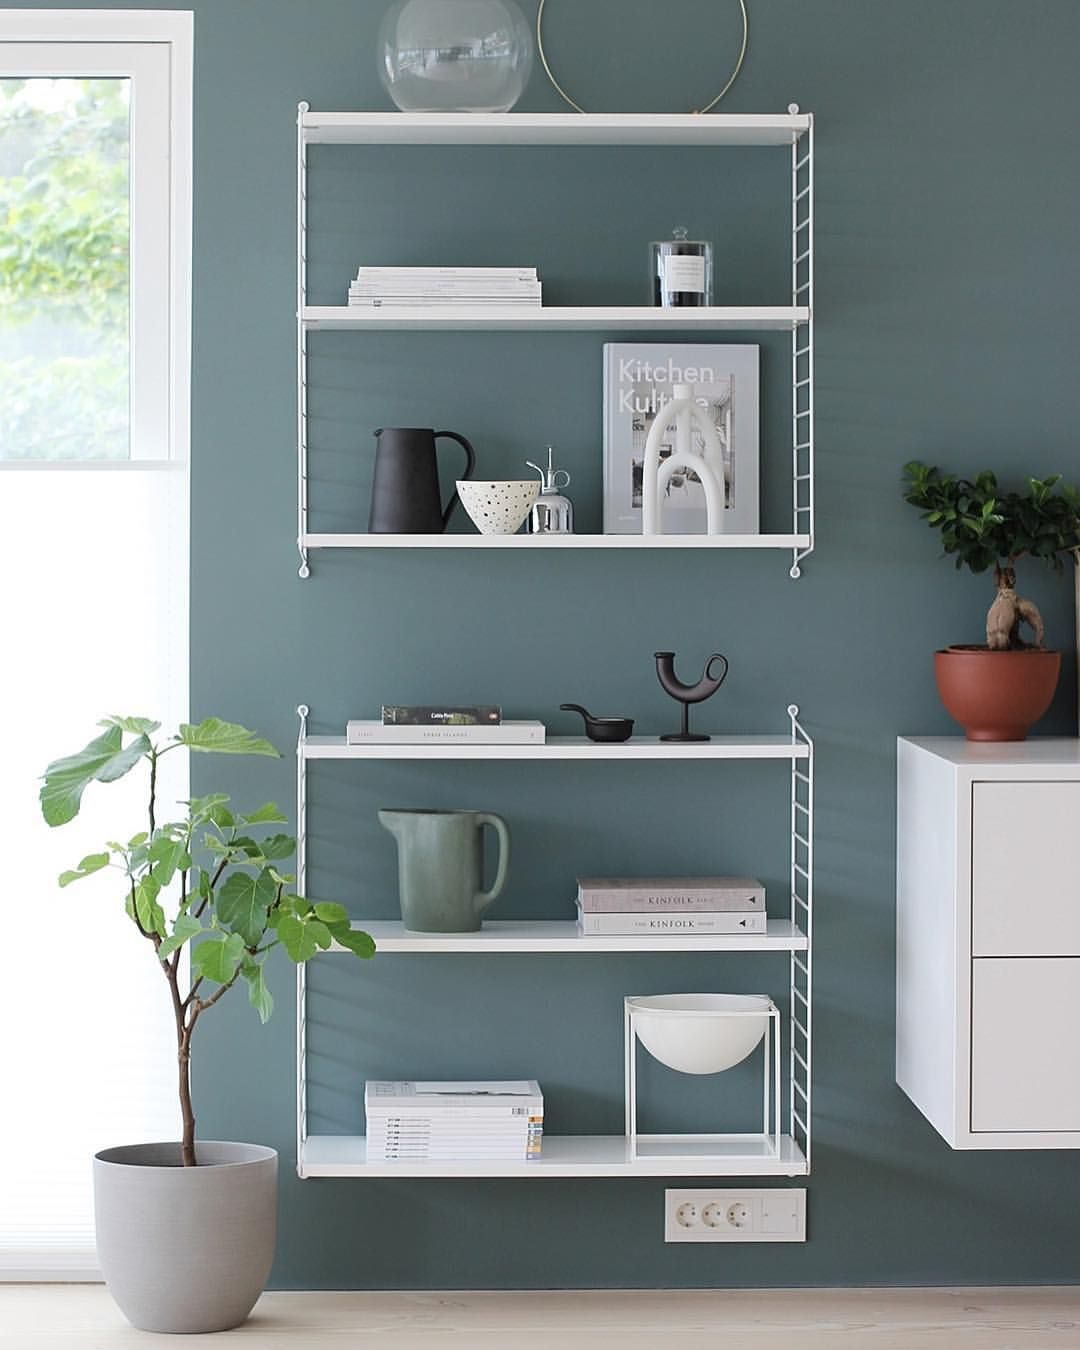 Dusk Colored Kitchen Cabinets: Home Decor, Wall Paint Colors, Best Wall Paint